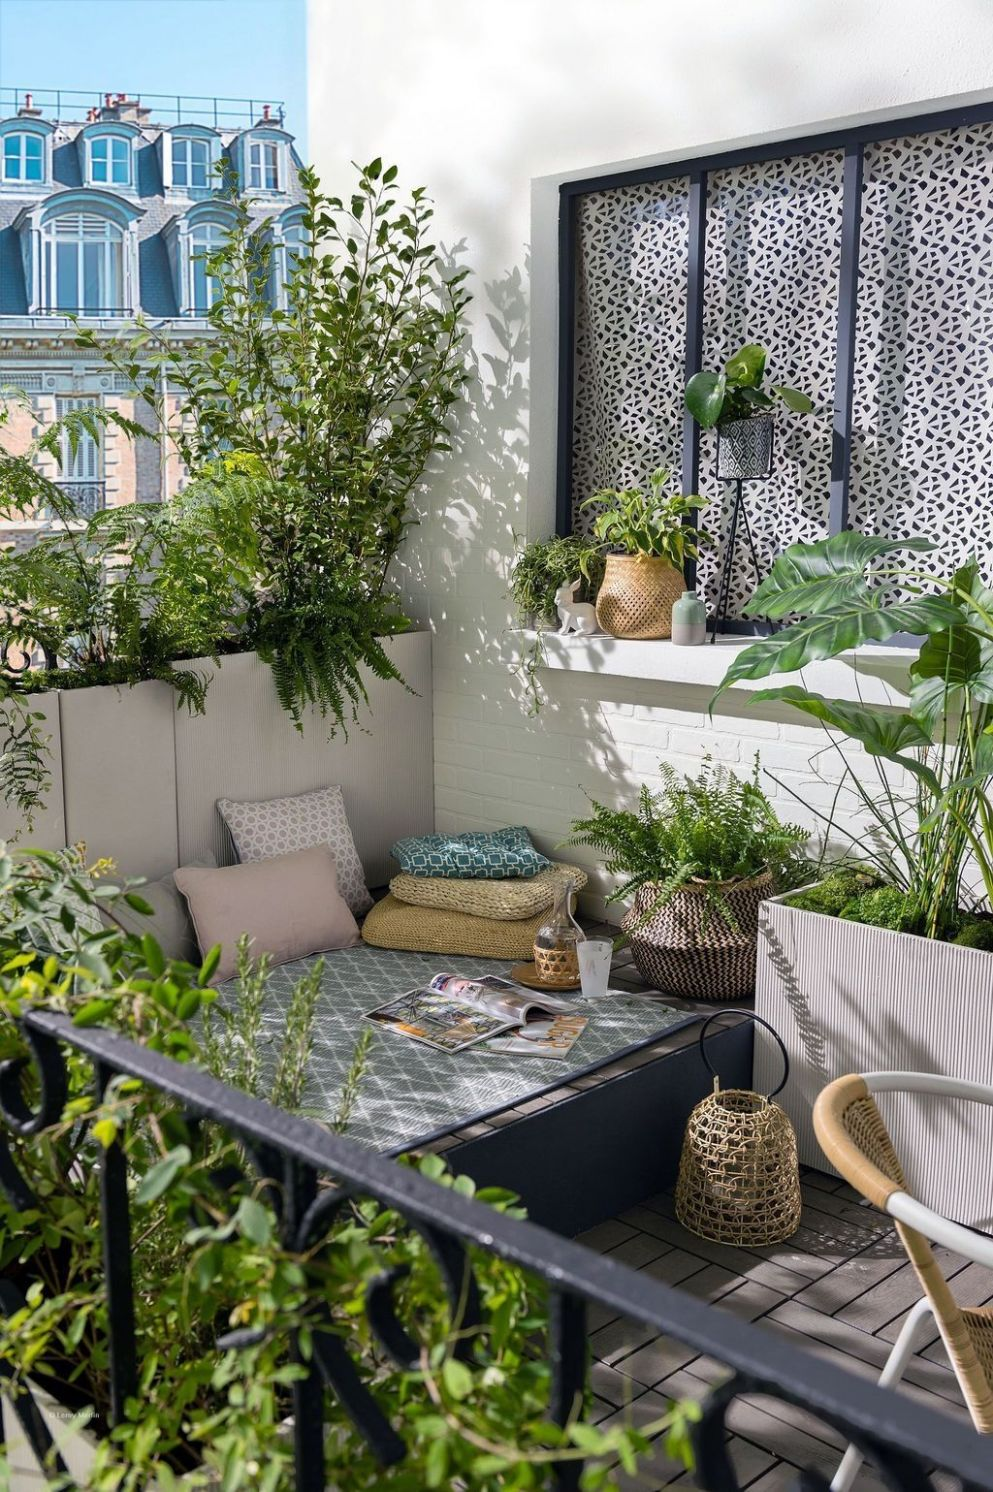 10+ Cozy Balcony Decorating Ideas | Small apartment balcony ideas ...